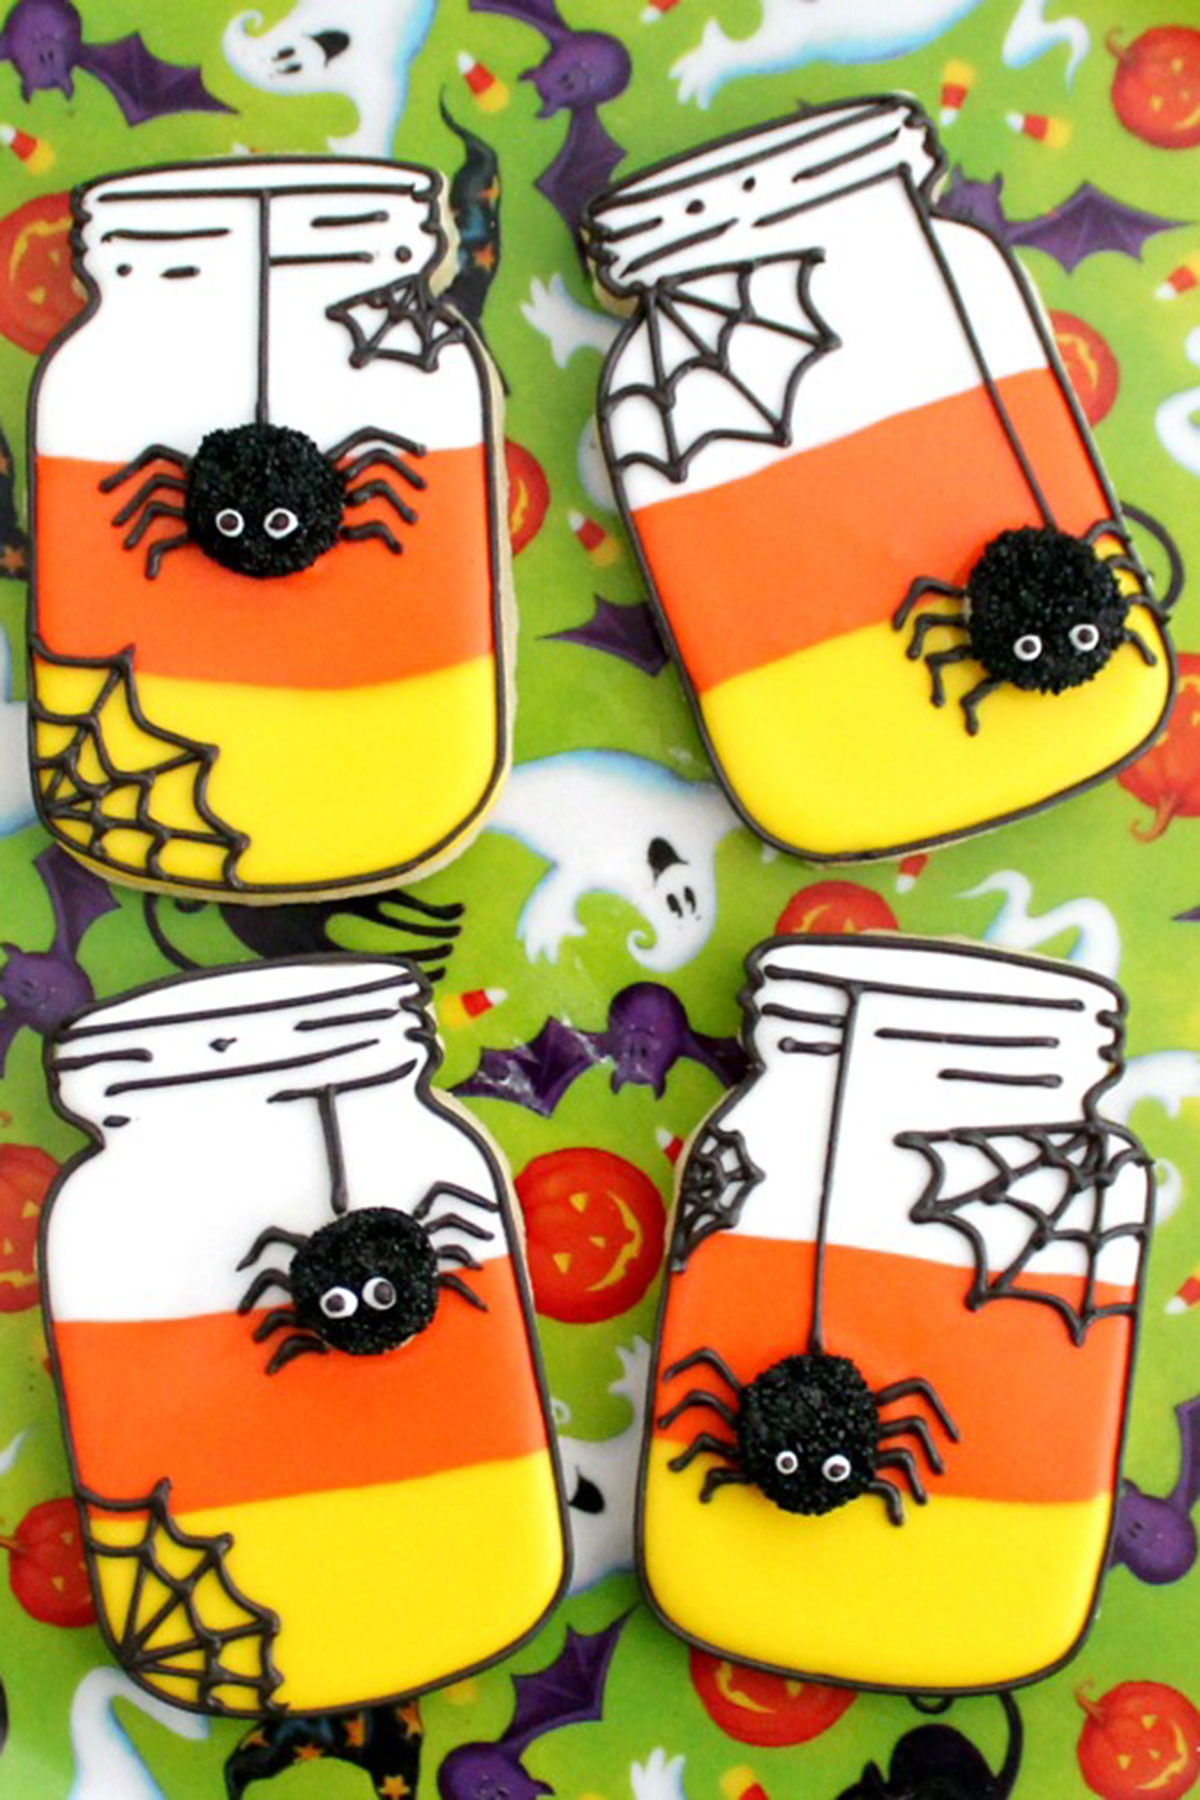 Pictures Of Halloween Cookies  31 Easy Halloween Cookies Recipes & Ideas for Cute